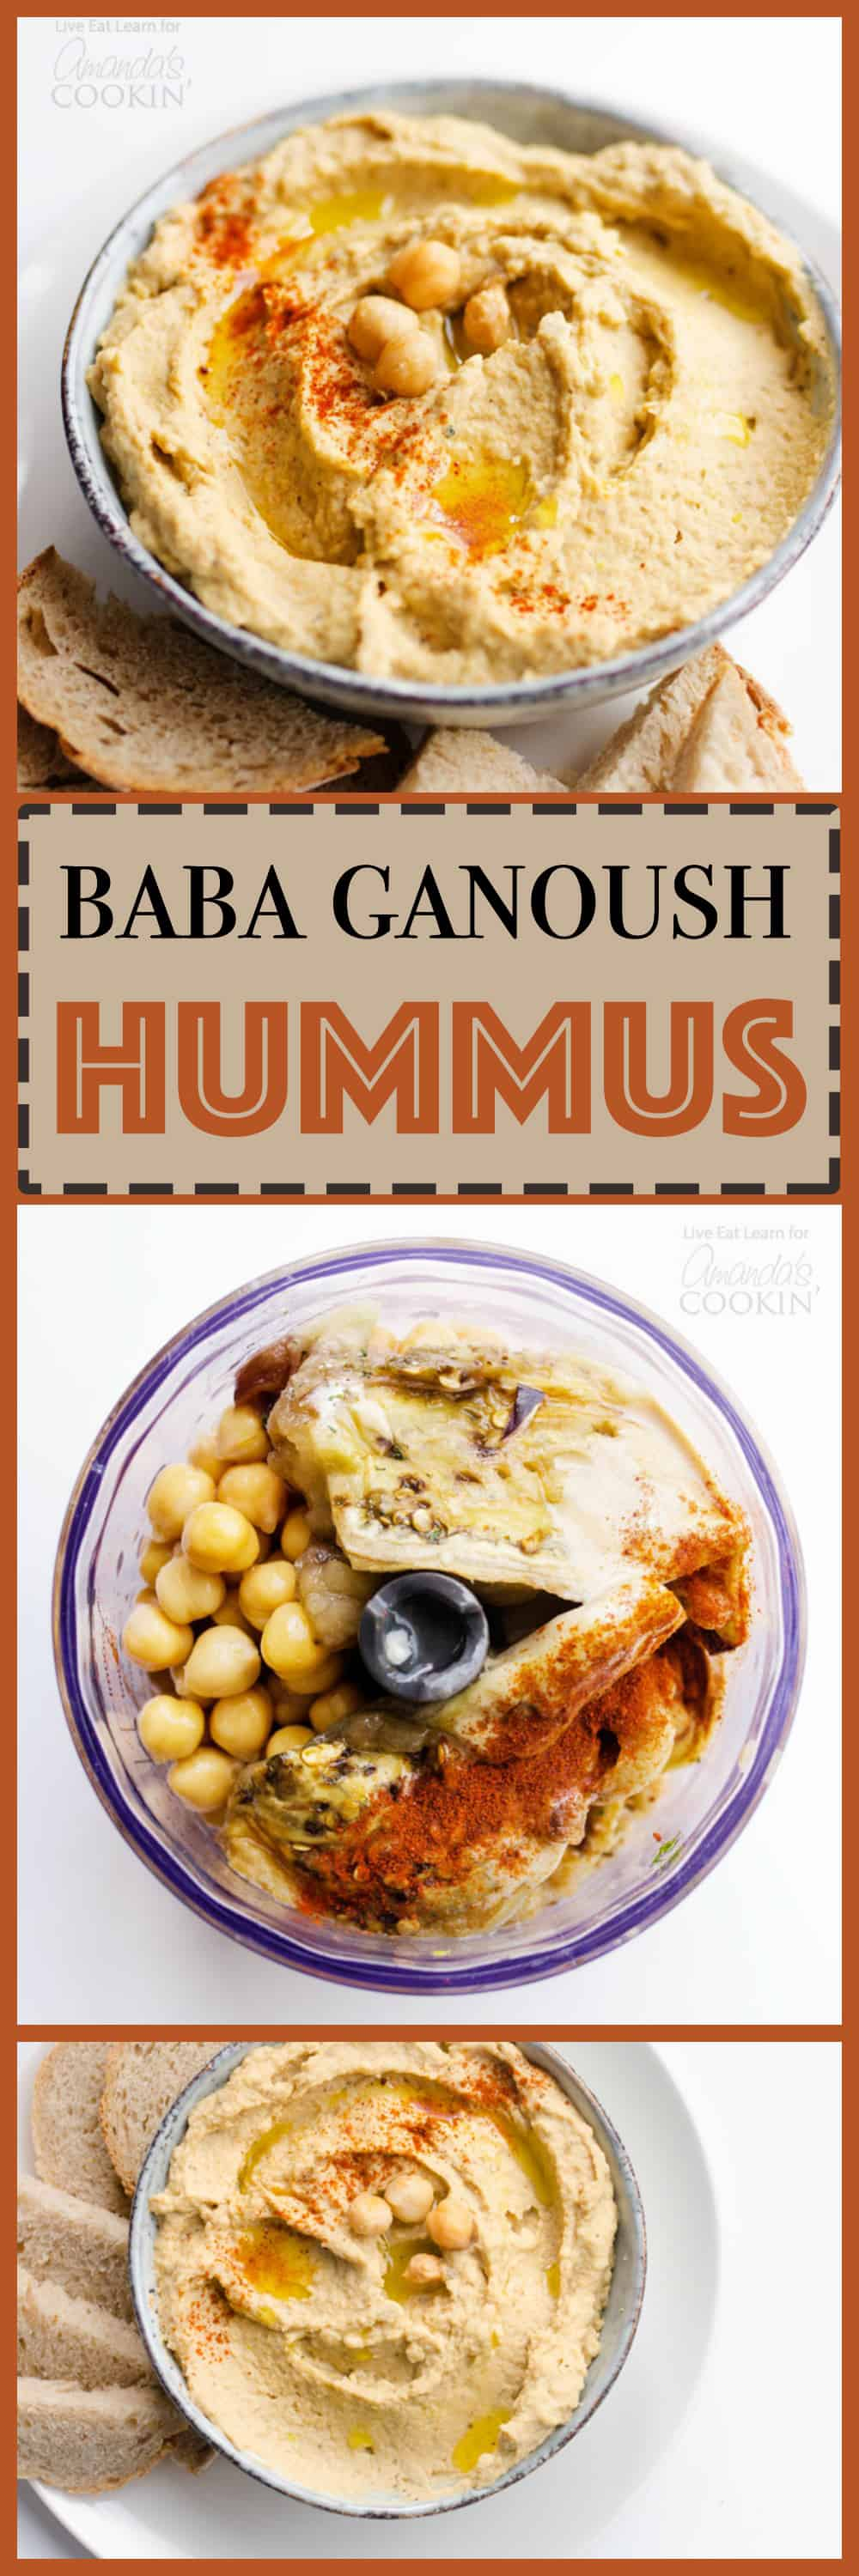 This Baba Ganoush Hummus is a hybrid between the rich and delicious eggplant dip and the classic chickpea hummus, spread it on just about everything!